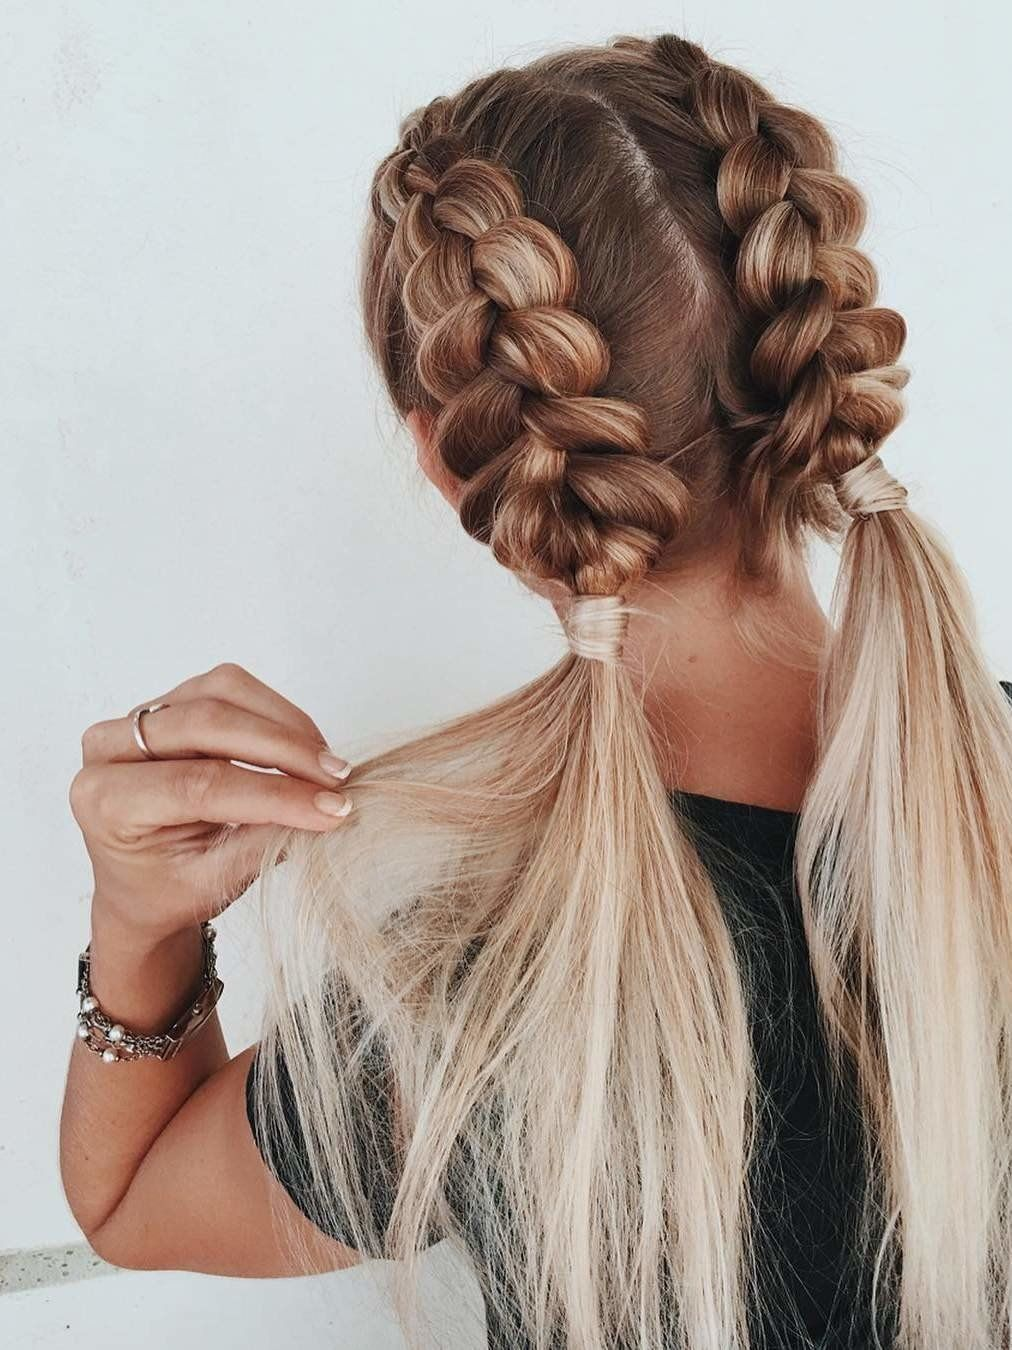 7 Braided Hairstyles That People Are Loving On Pinterest Cool Braid Hairstyles Hair Styles Braided Hairstyles Easy